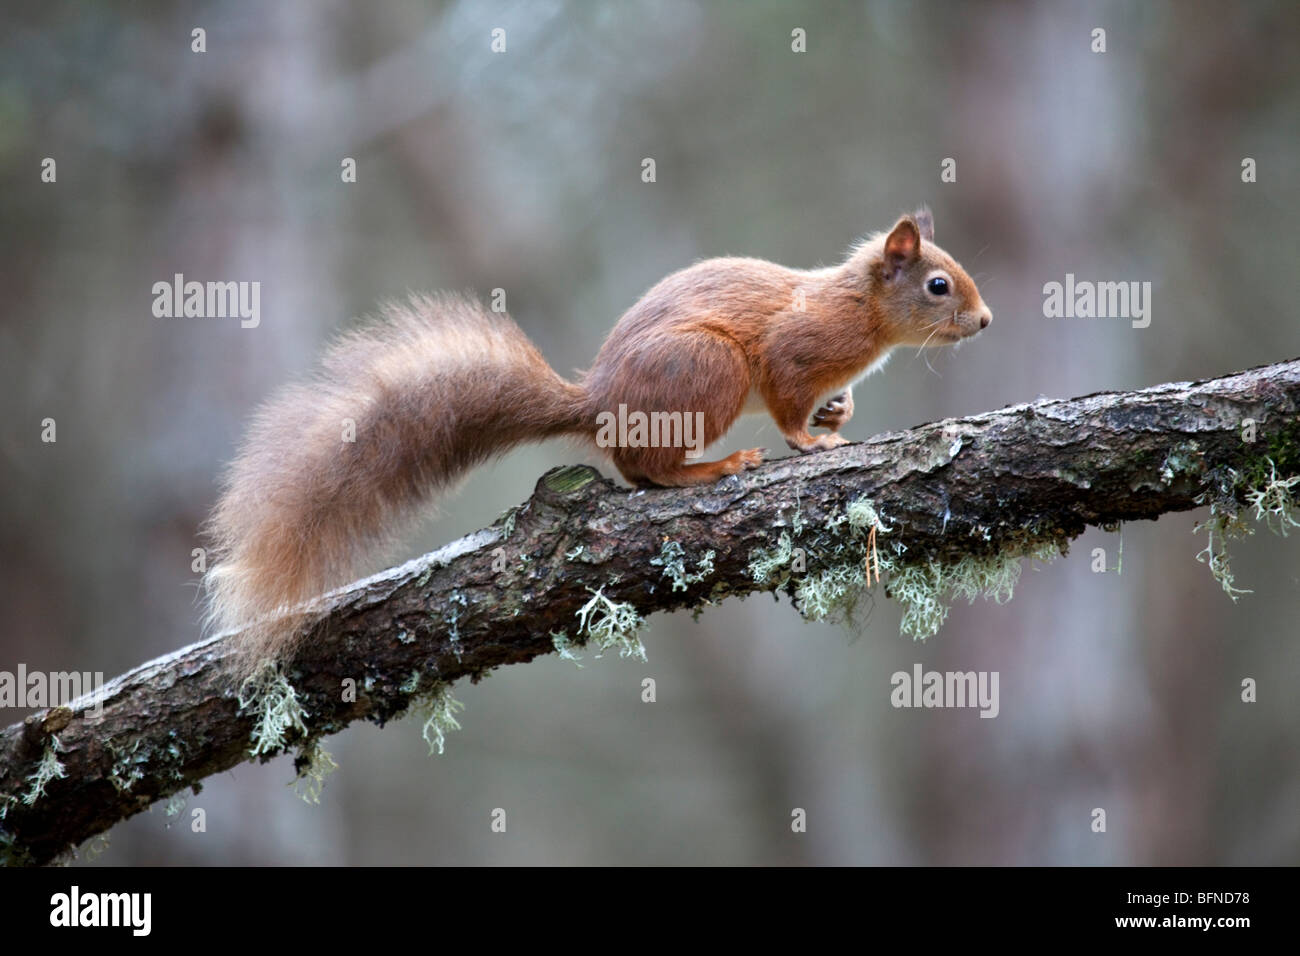 Red Squirrel Sciurus vulgaris in Scottish Cairngorms pine forest perched on tree branch. - Stock Image